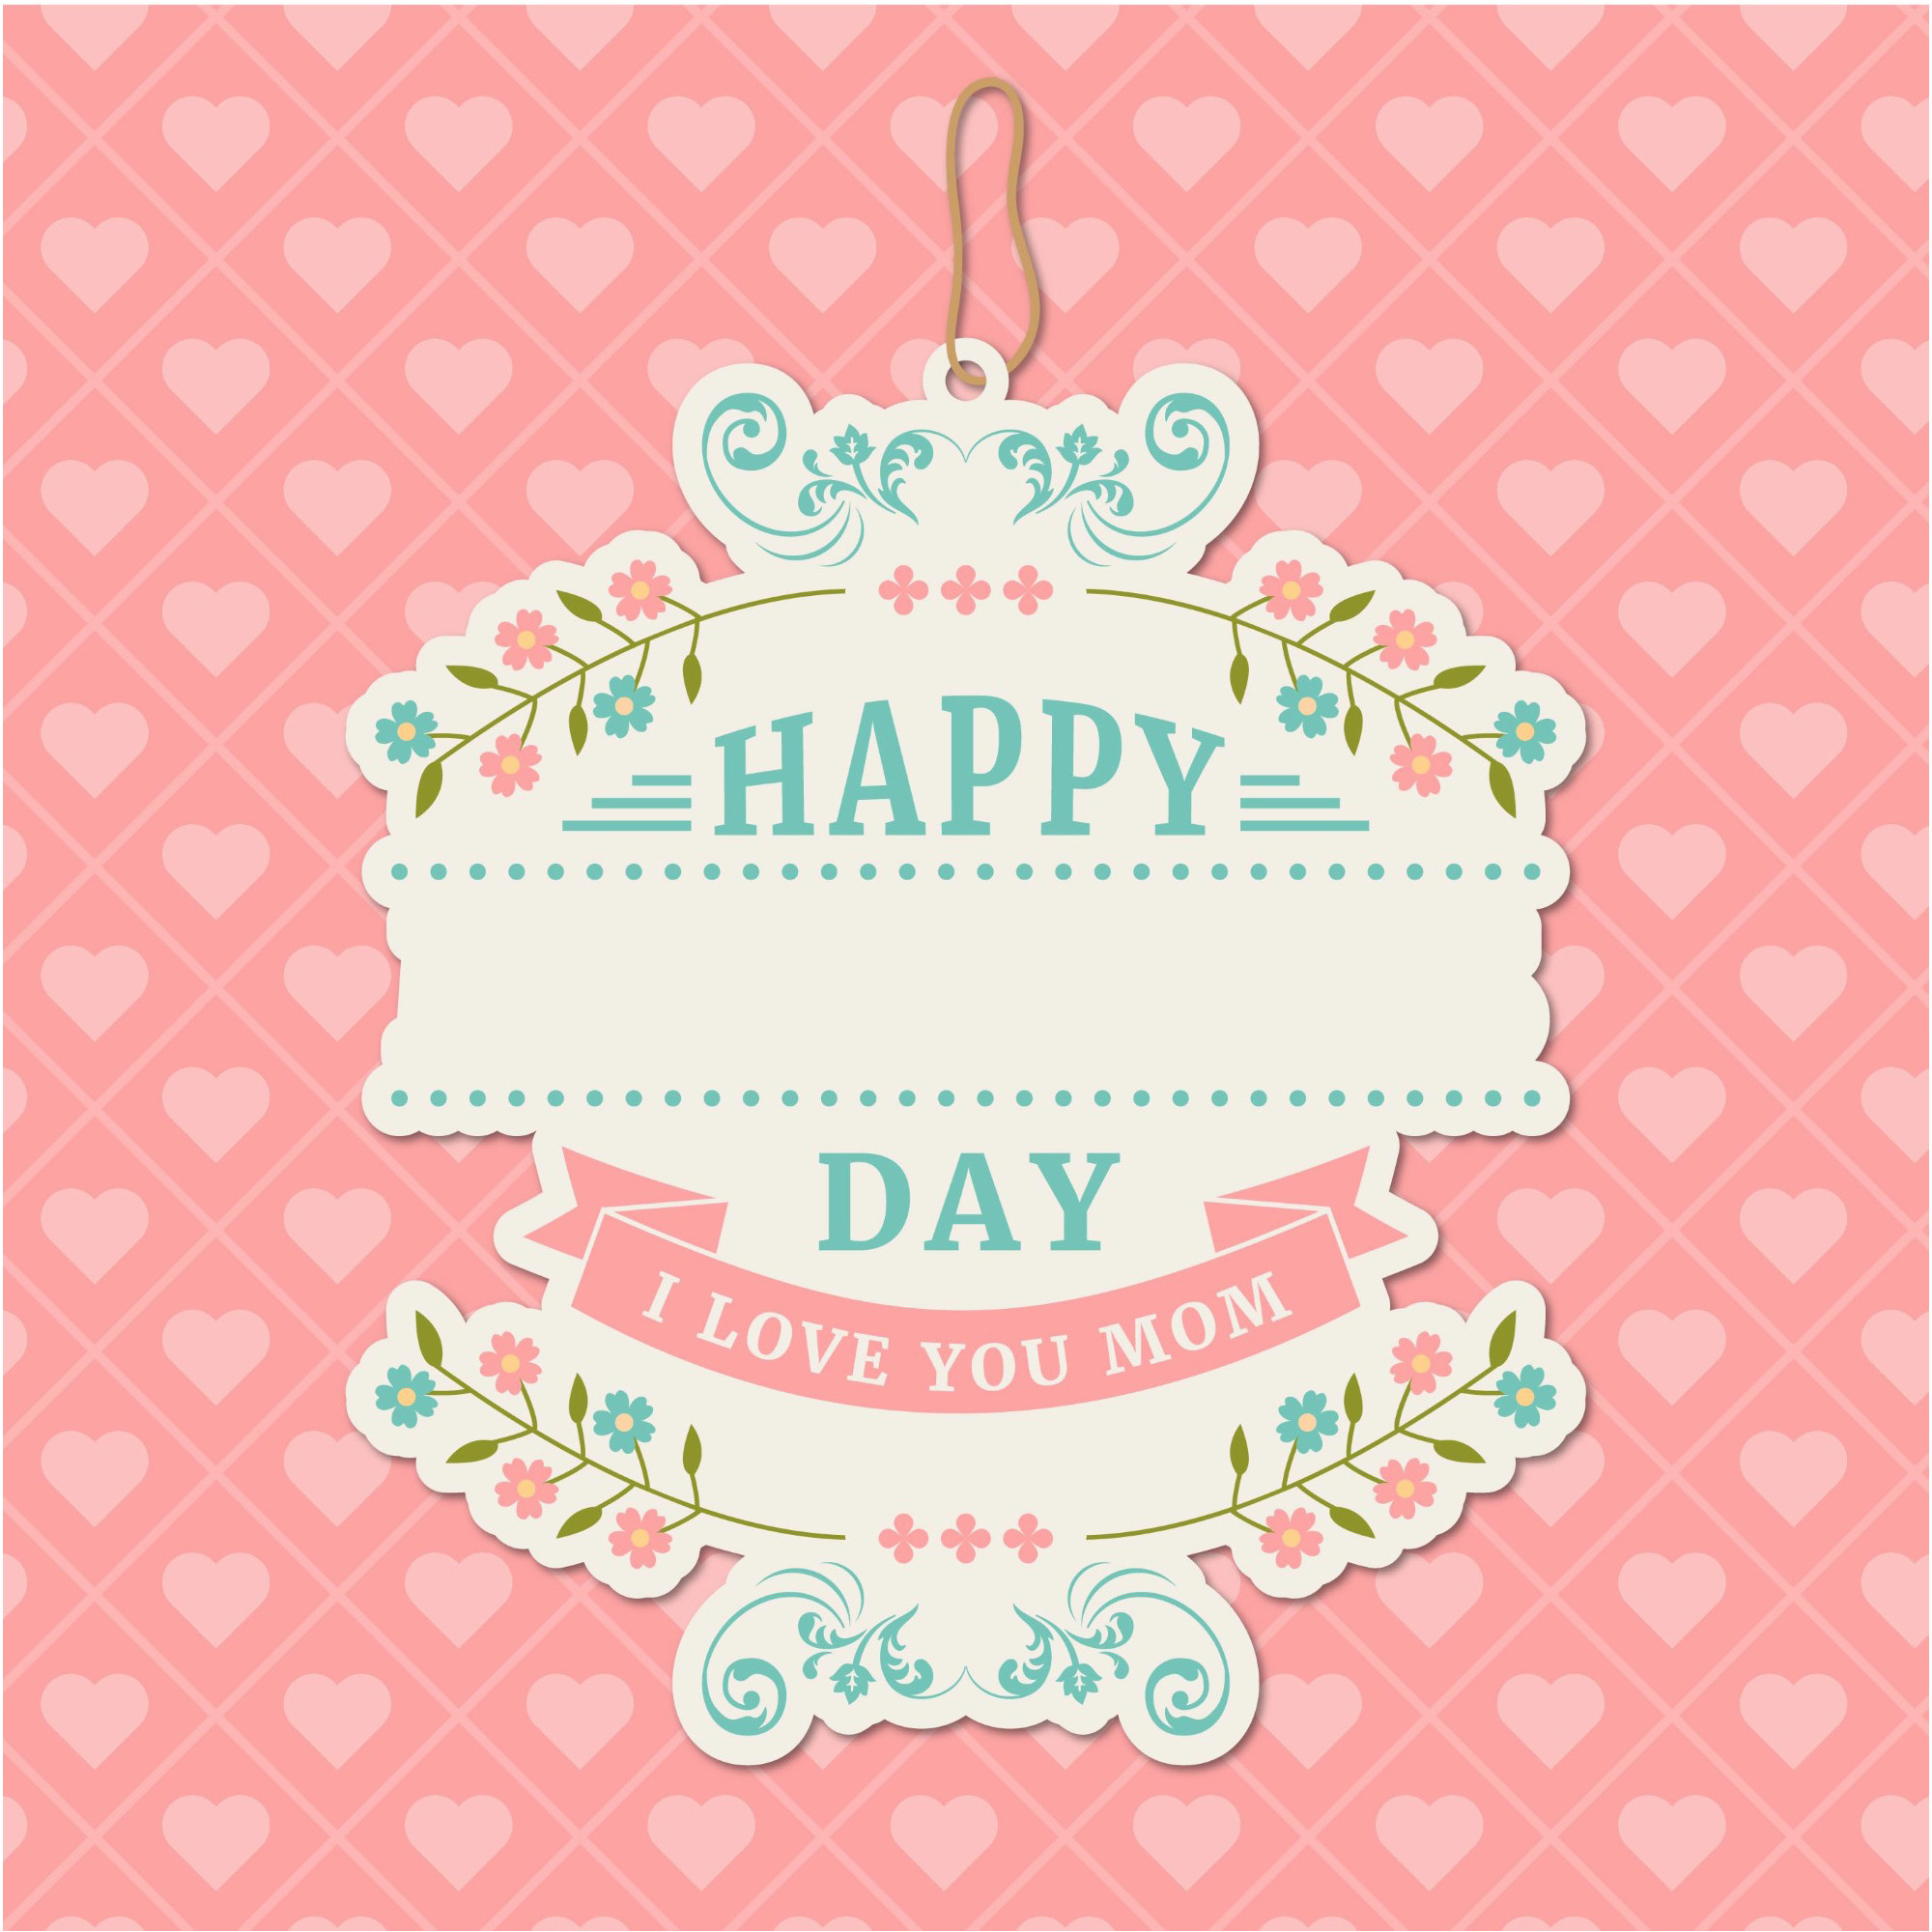 2000x2000 Are you looking for Mother Day greeting card Vector Background. We have  combined 604 Mother's Day vector party background for Crafts and  Decorations.